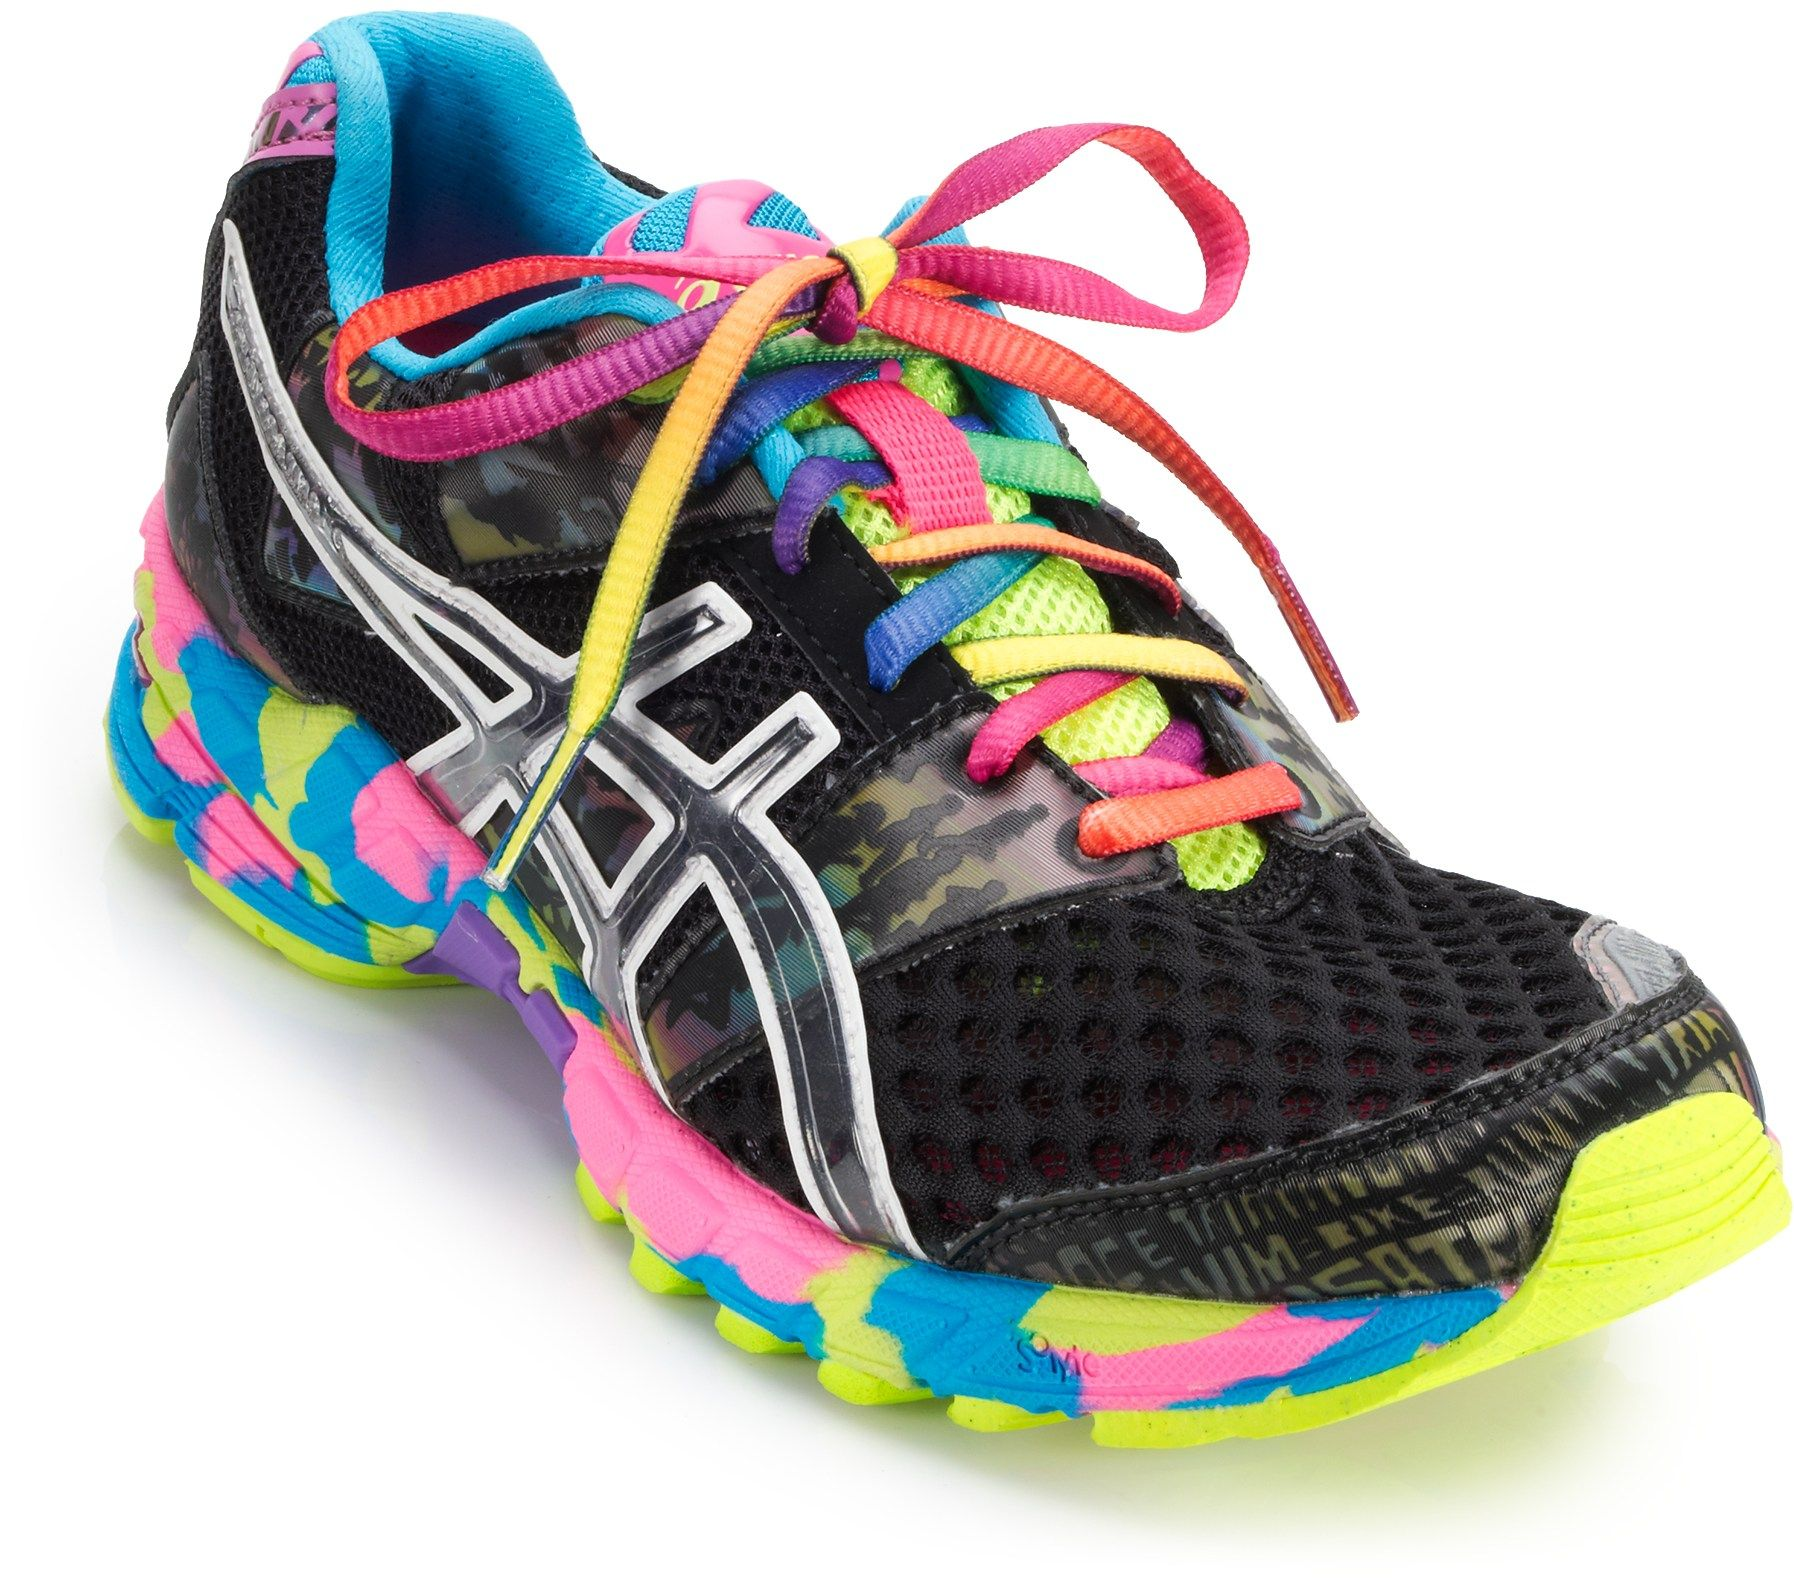 Asics Gel Noosa Tri 8 Road Running Shoes Women S Best Trail